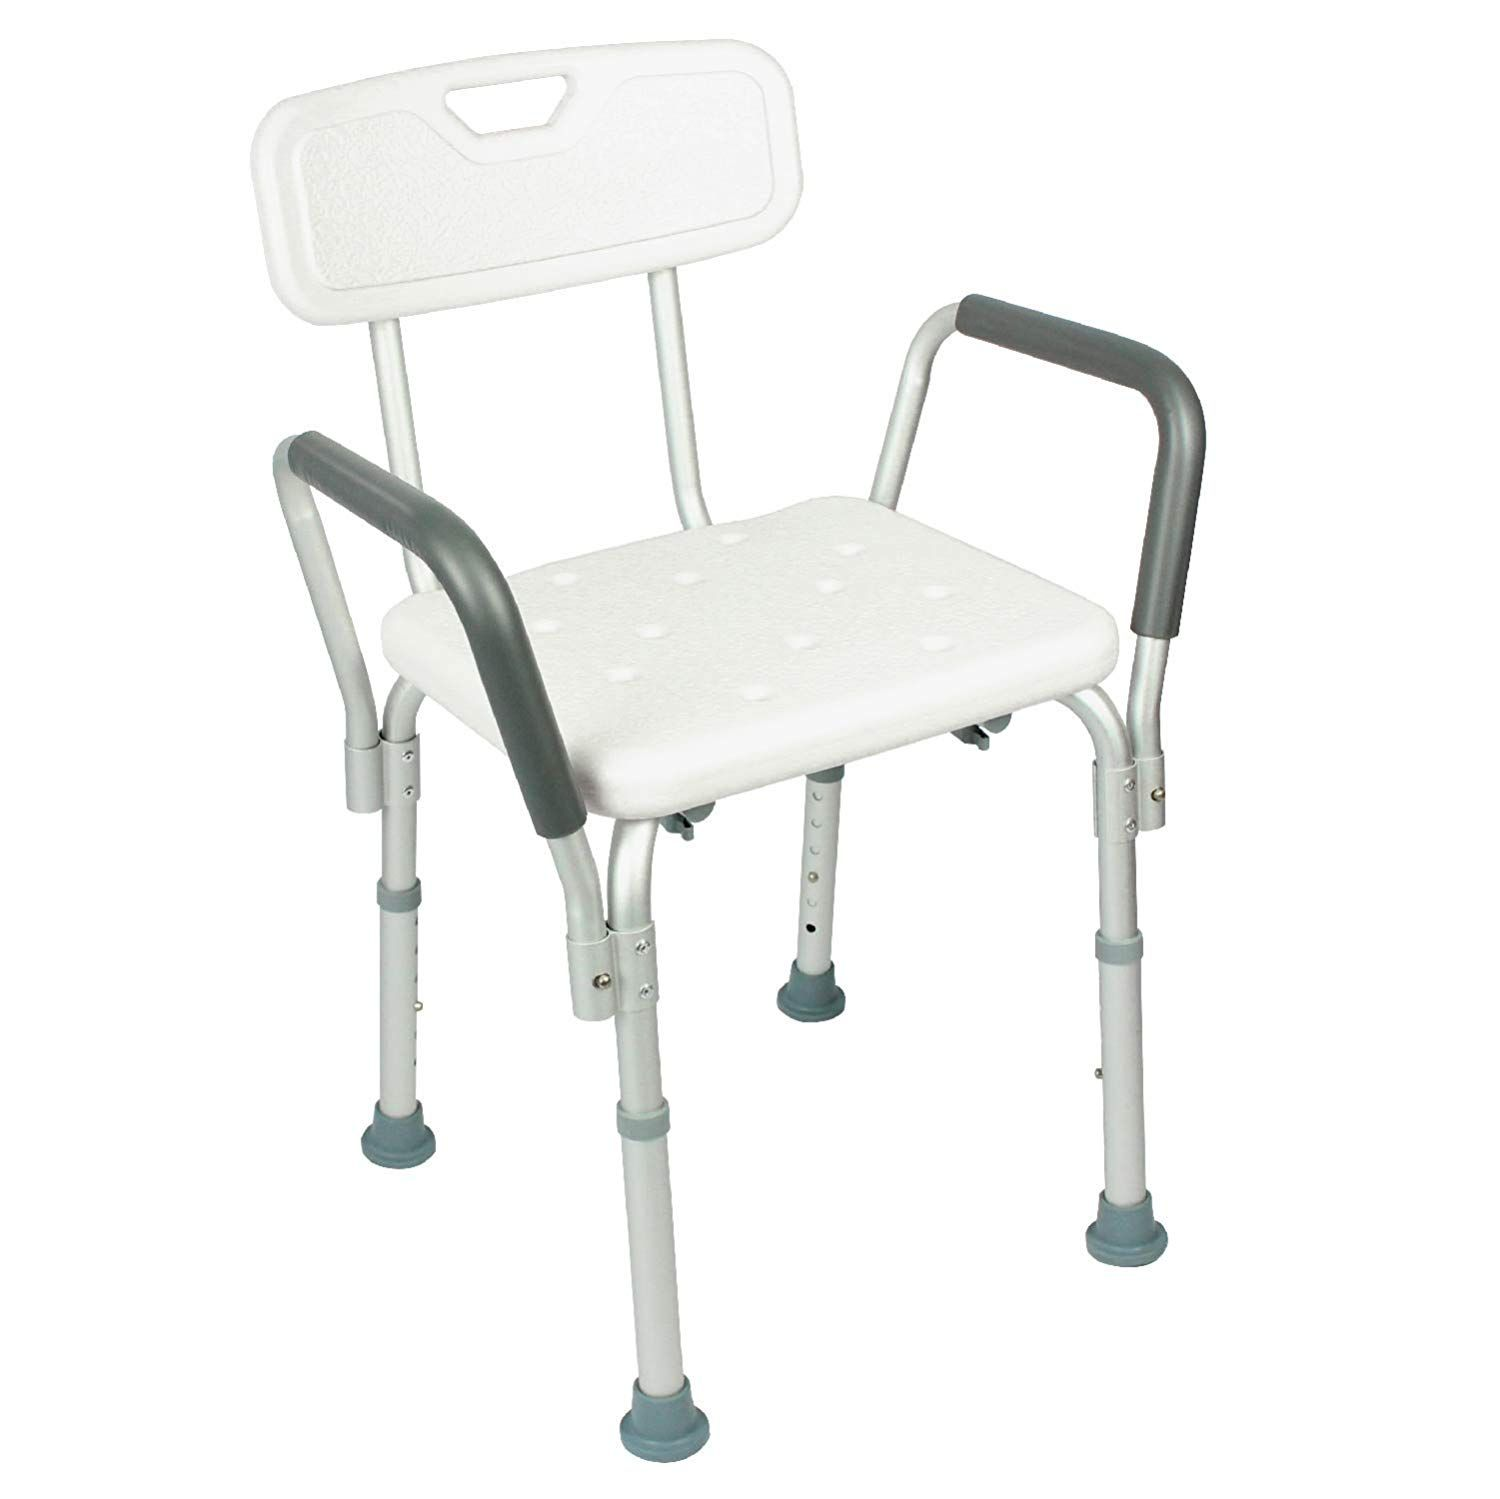 Vive Shower Chair With Back Handicap Bathtub Bench With Padded Armrest For Disabled Seniors And Elderly Adjustable Medical Ba Shower Chairs For Elderly Bath Chair For Elderly Shower Chair